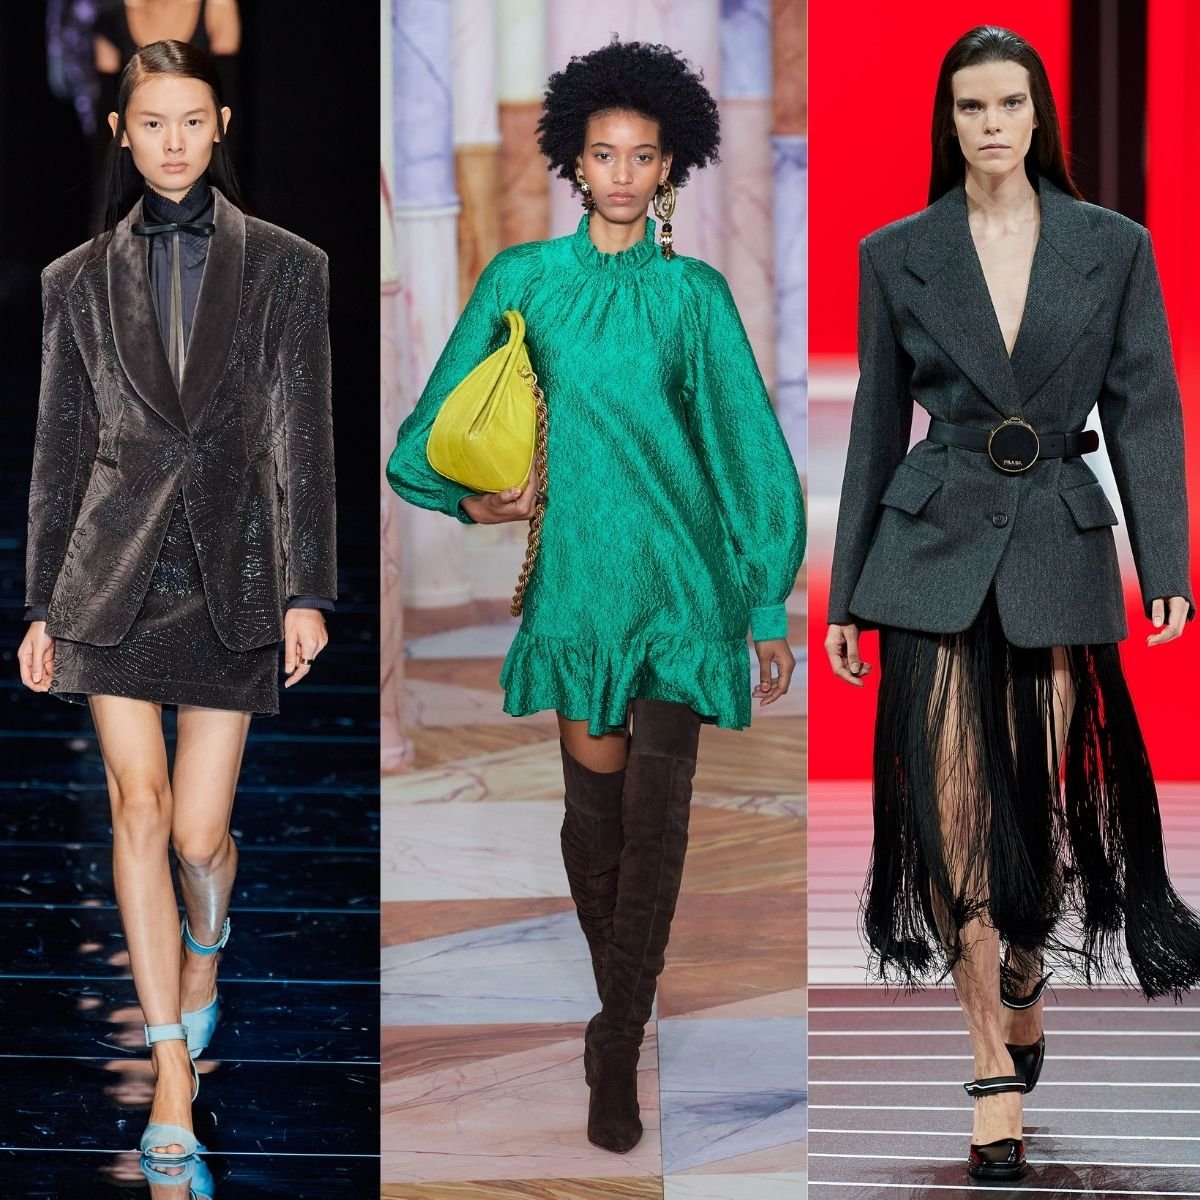 Sportmax, Ulla Johnson and Prada runway images